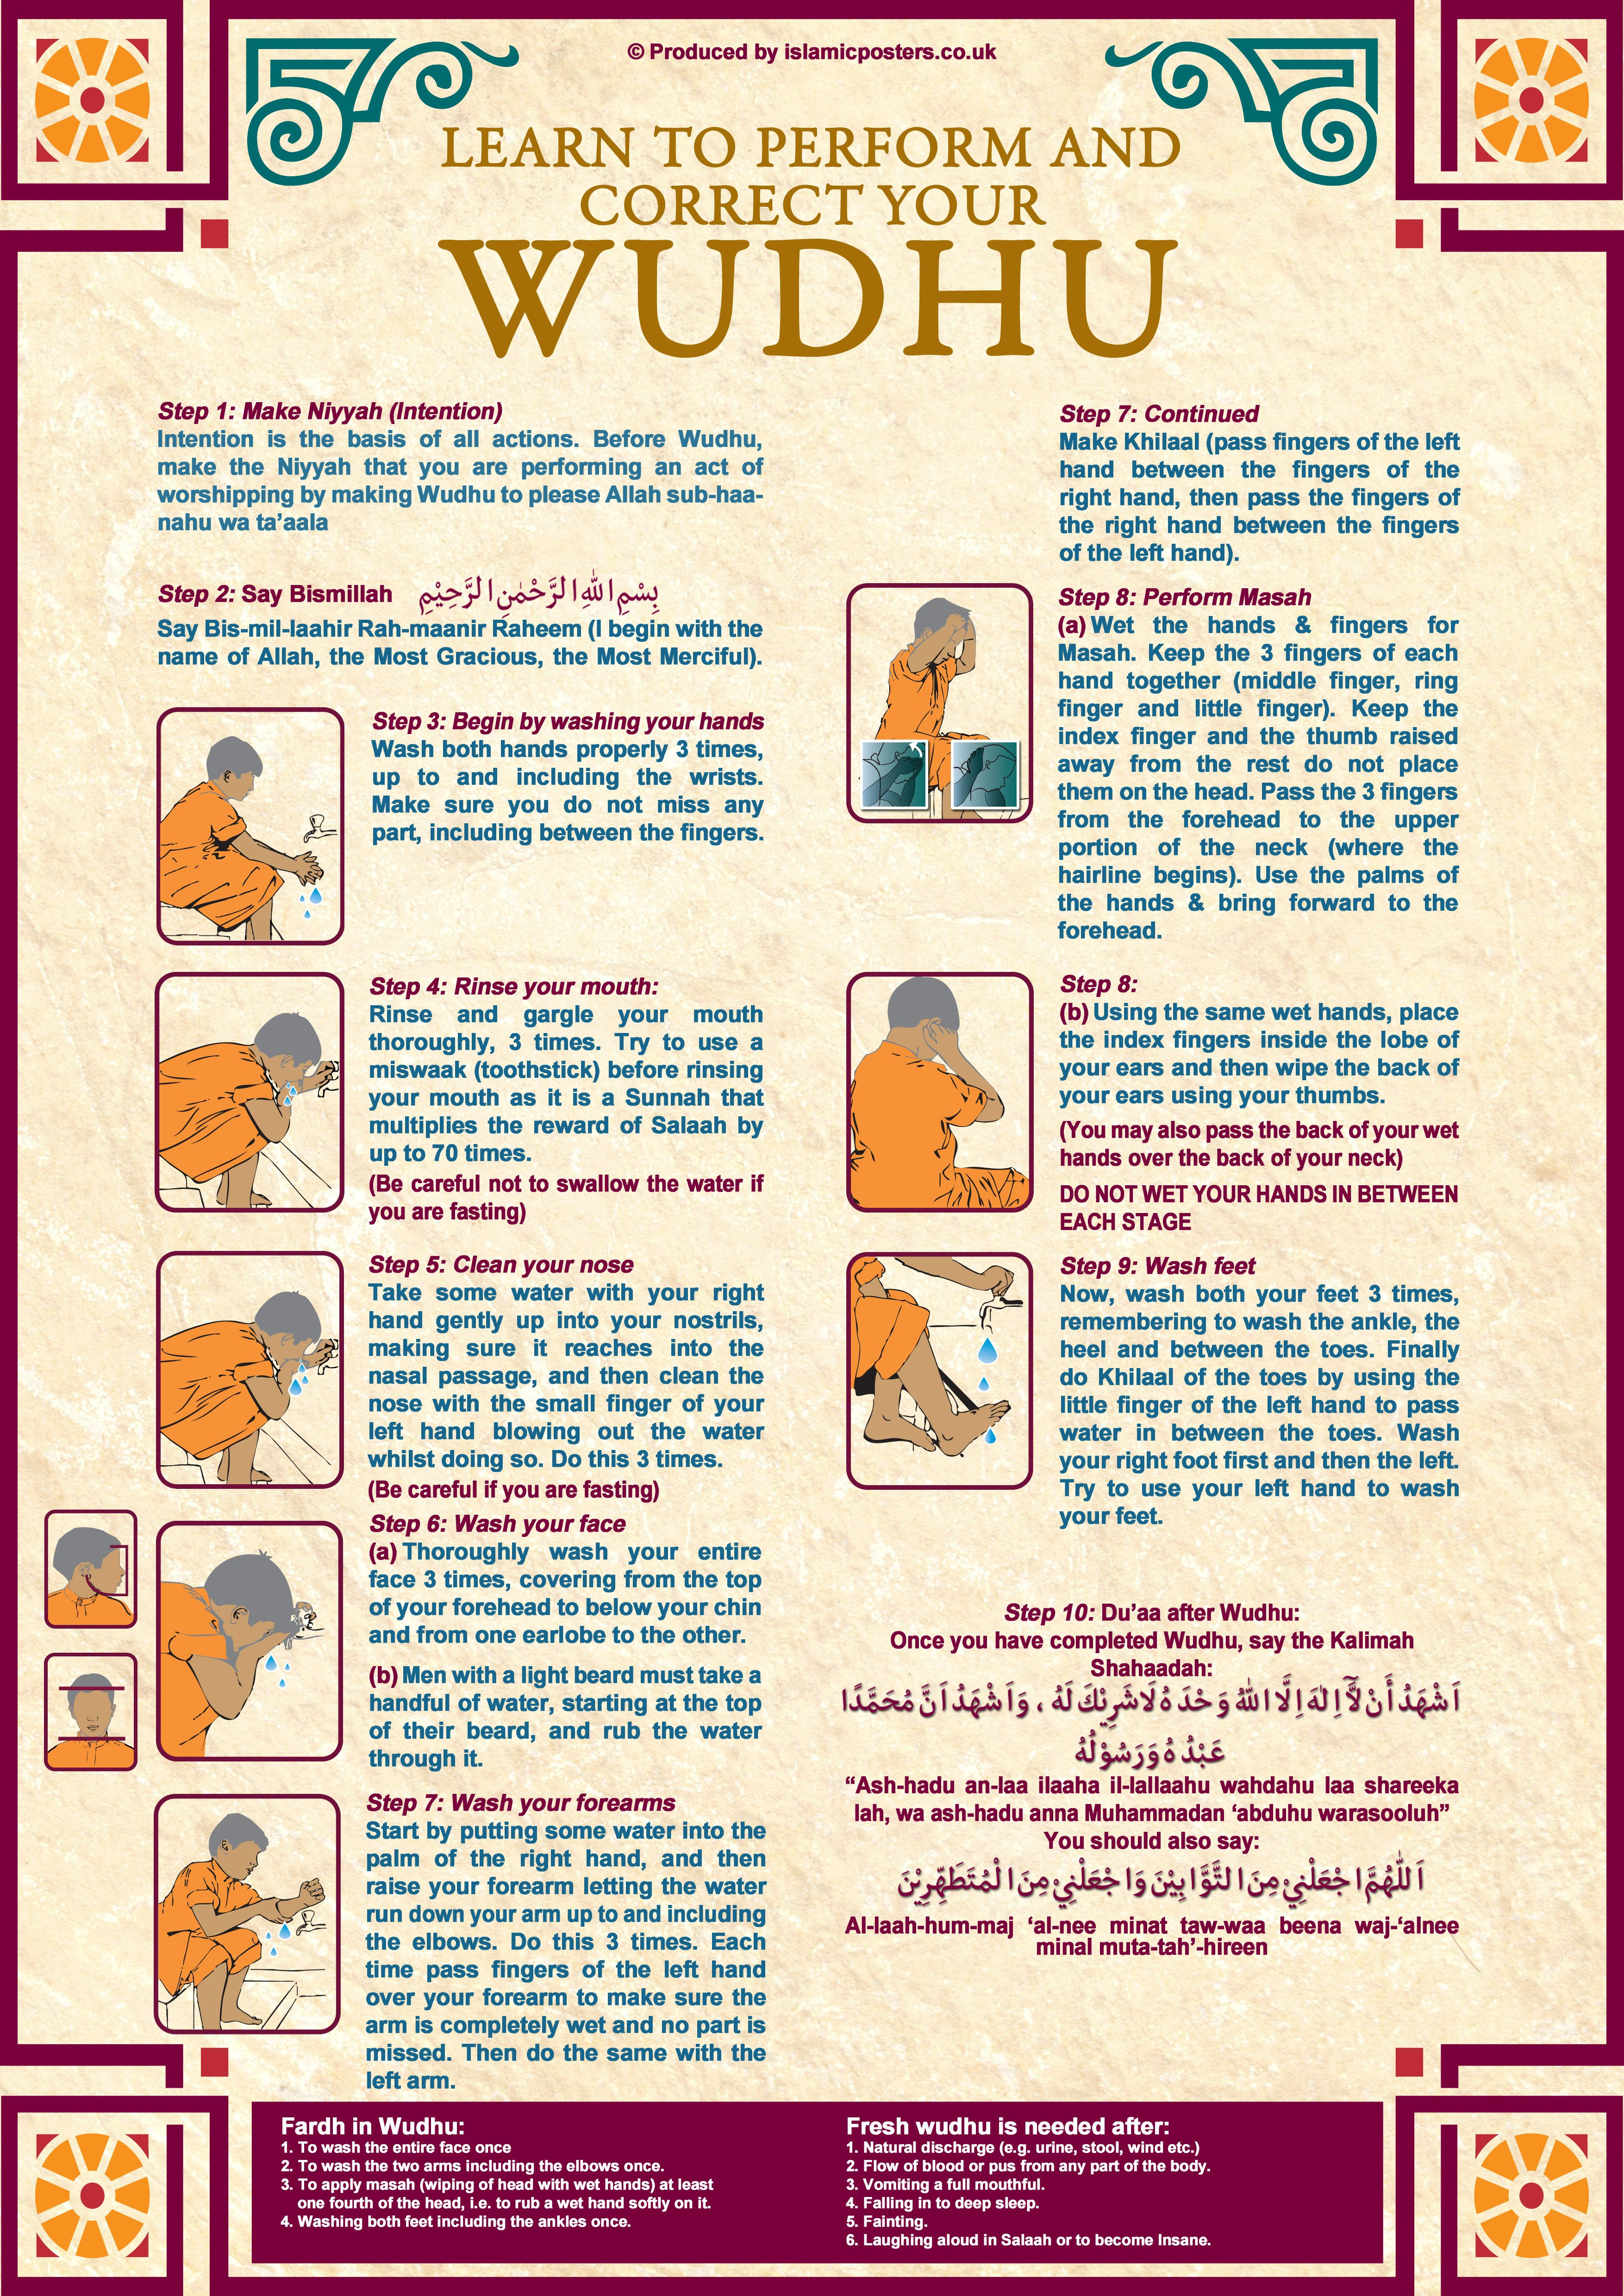 learn how to pray in islam step by step